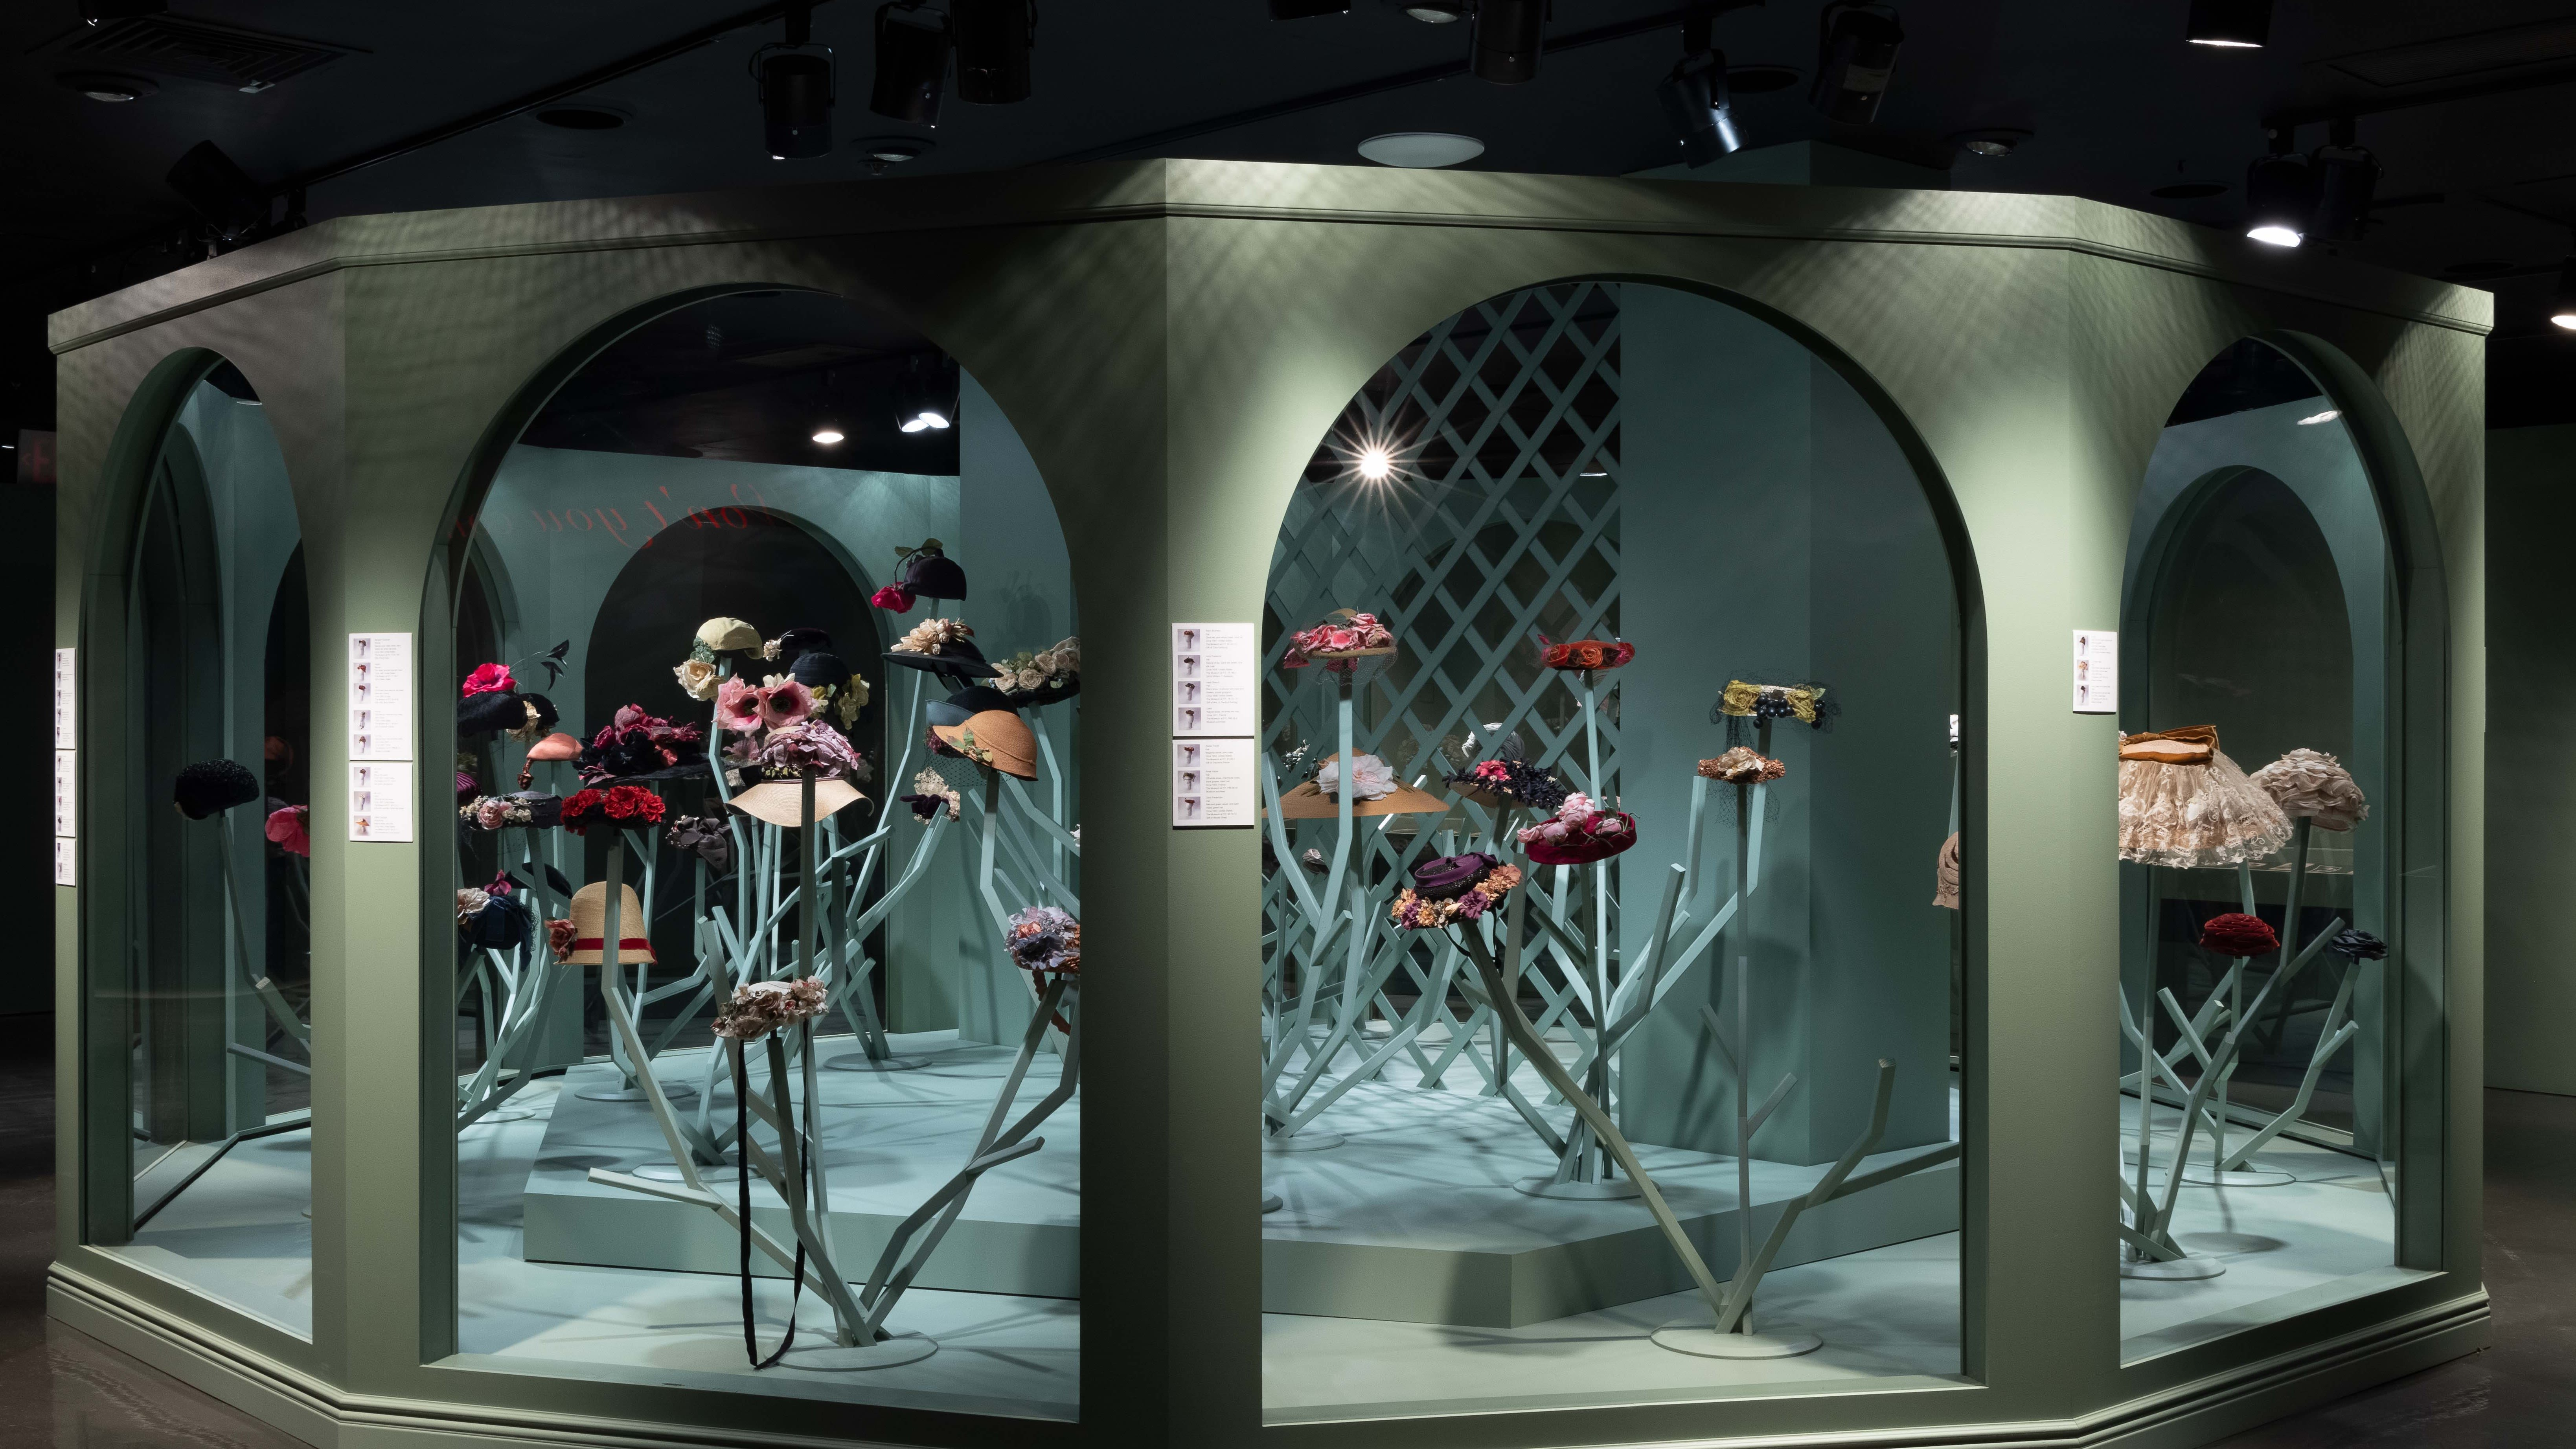 Brances of roses enclosed in a pentagonal glass case, located in a dark room with electronic teal-coloured lighting.